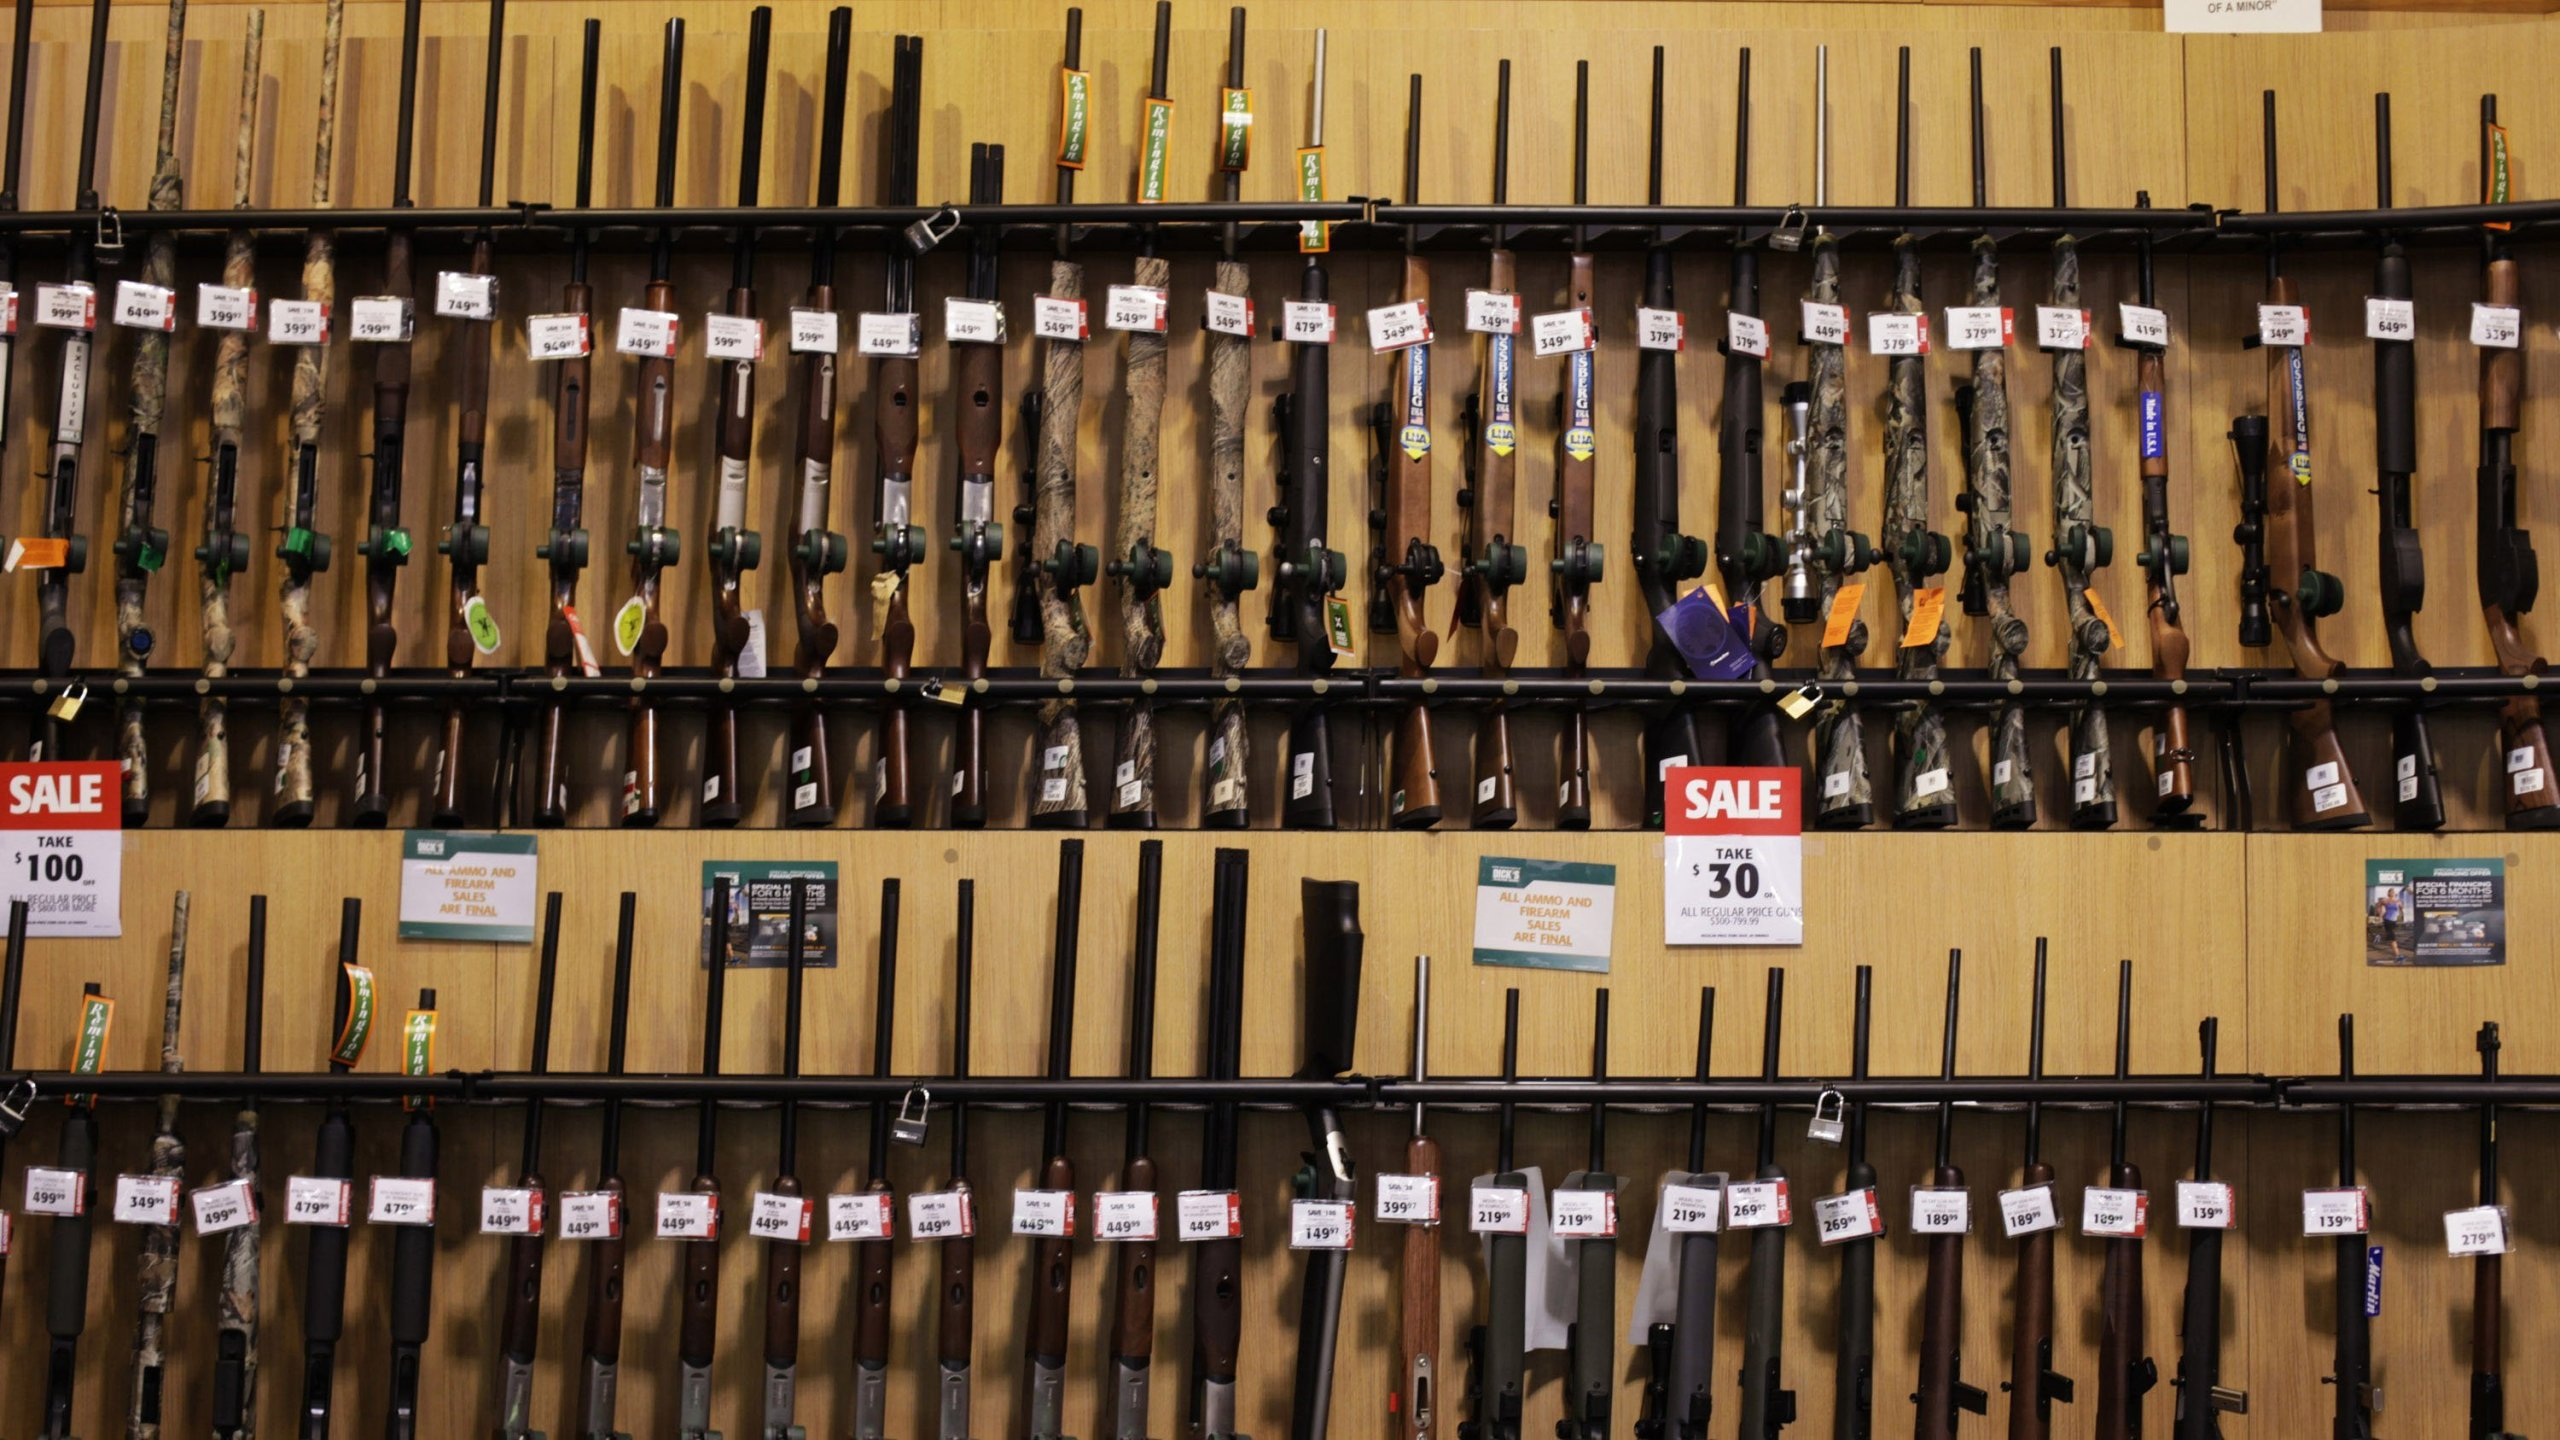 Dick's Sporting Goods has destroyed $5 million of the chain's gun inventory, its CEO said. (Credit: Victor J Blue/Bloomberg/Getty via CNN)